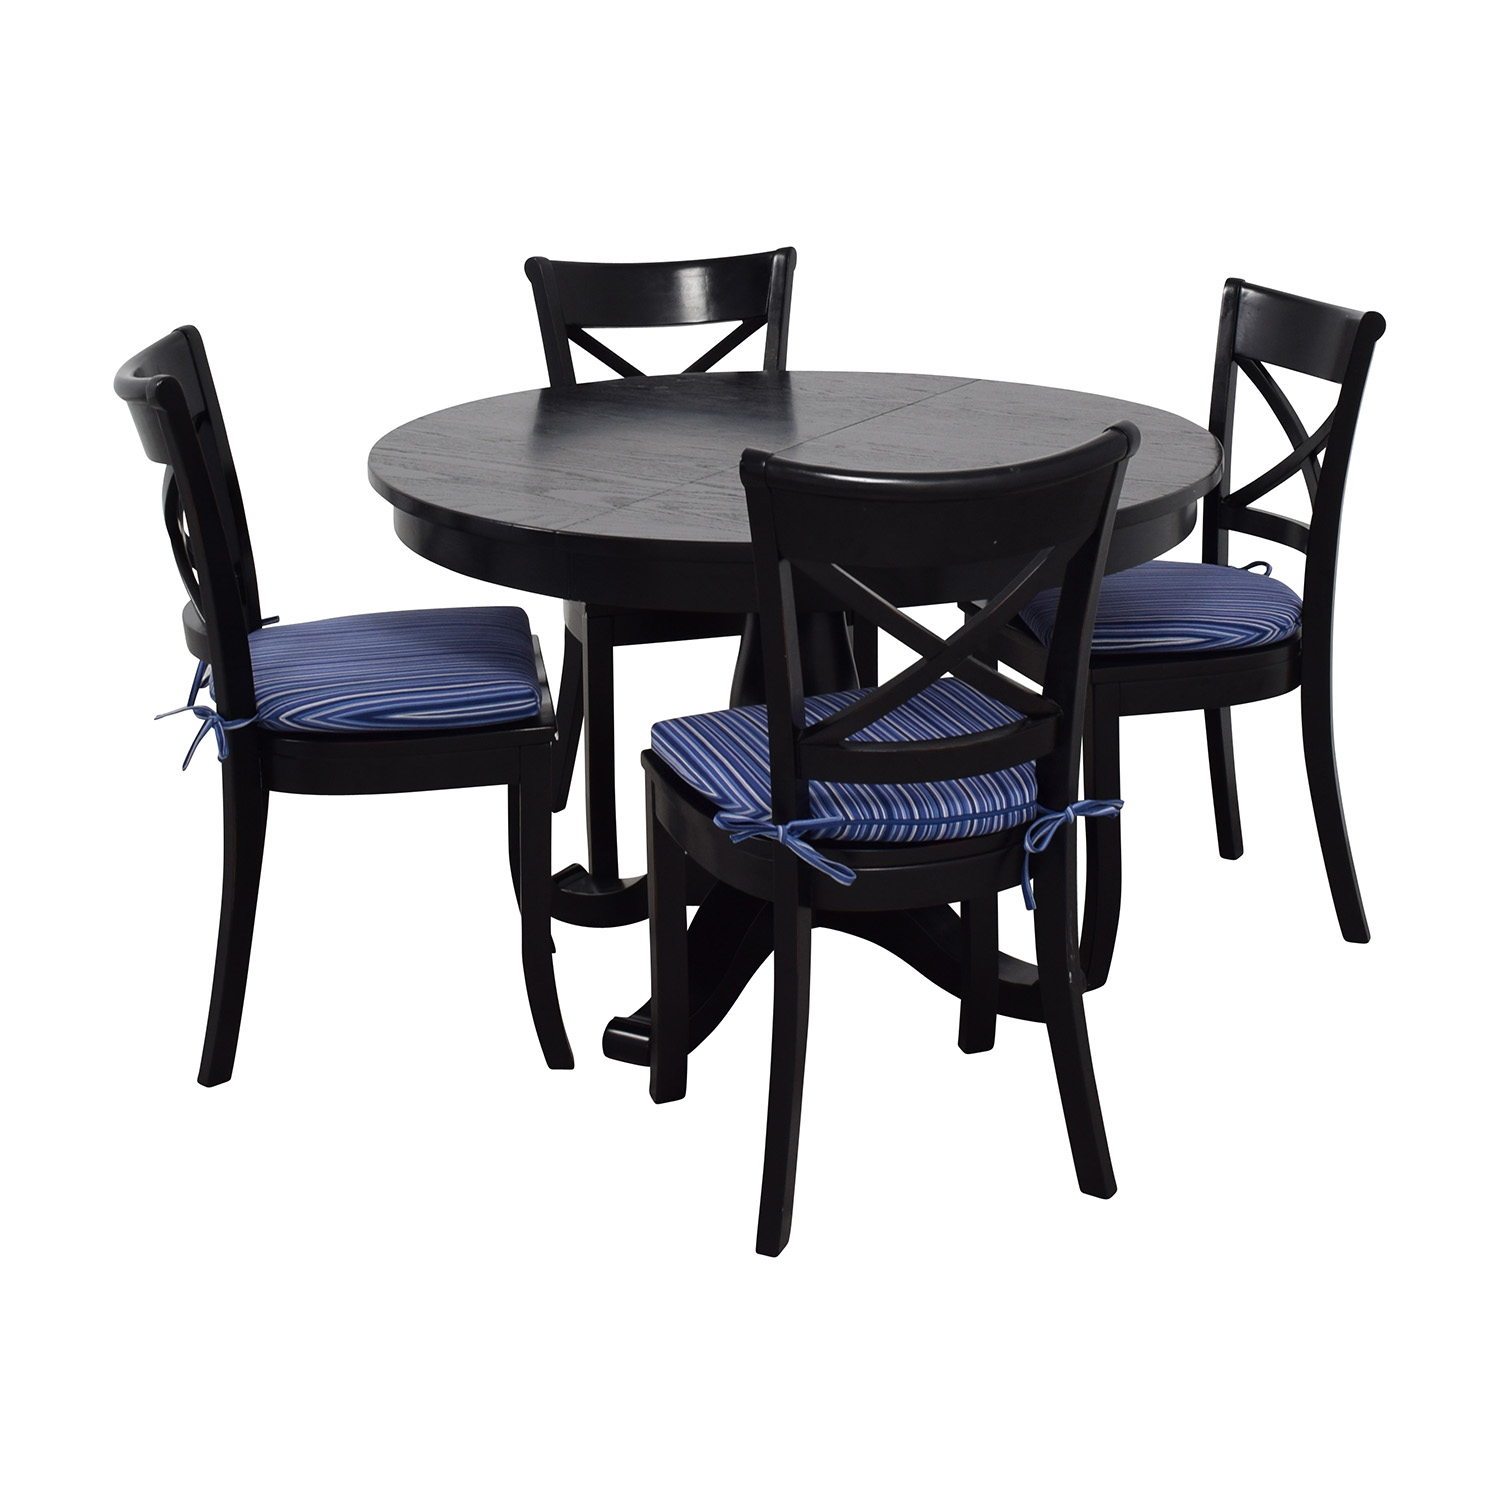 Used Table And Chairs 60 Off Crate And Barrel Crate And Barrel Table And Chairs